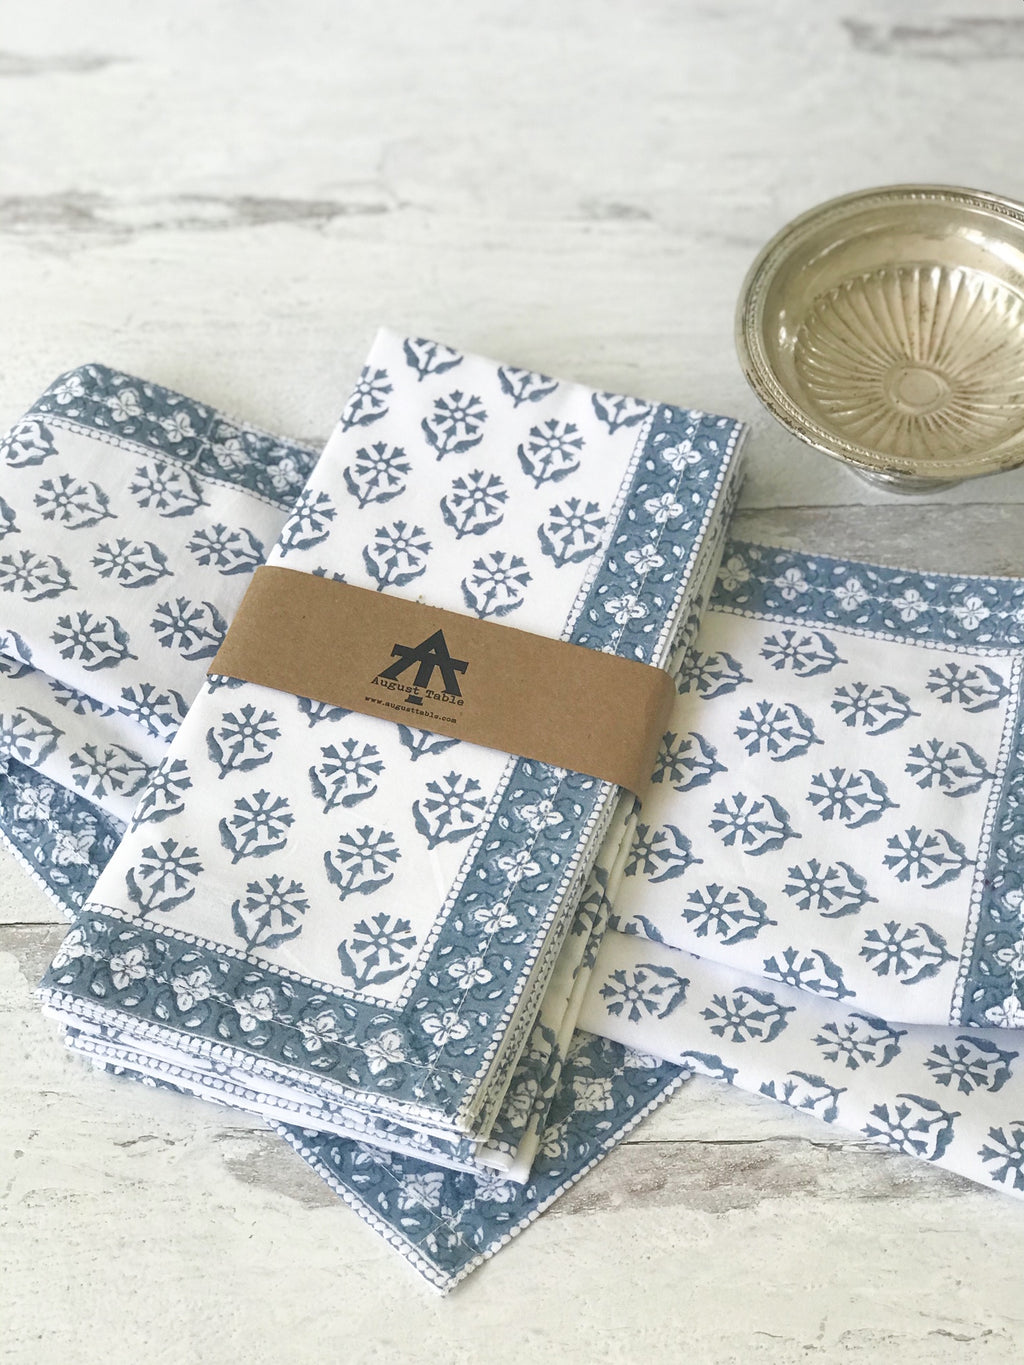 Sequoia Napkins in Stella Blue - set of 4